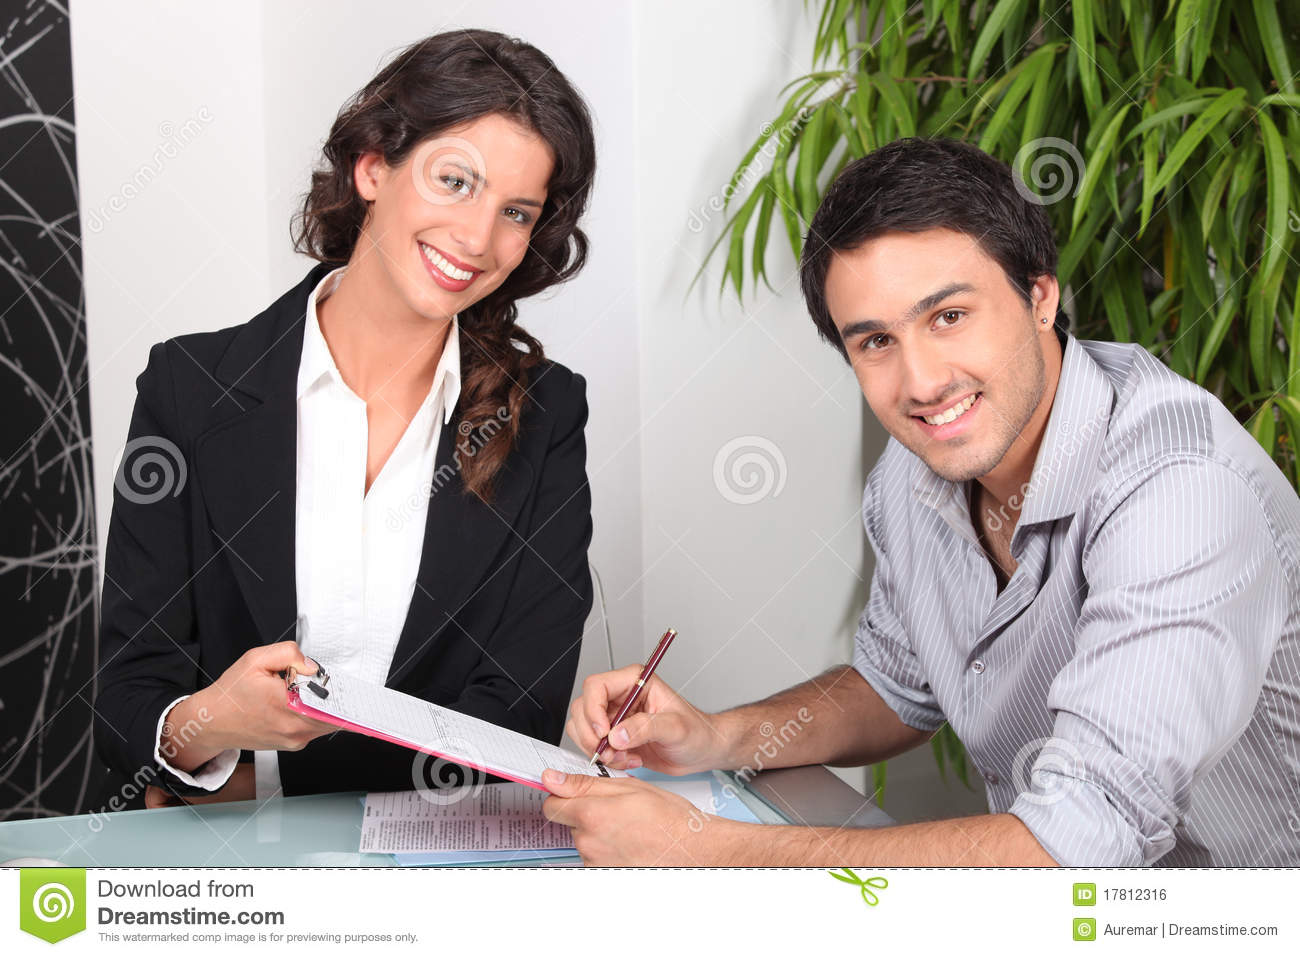 Young man signing document and young woman smiling